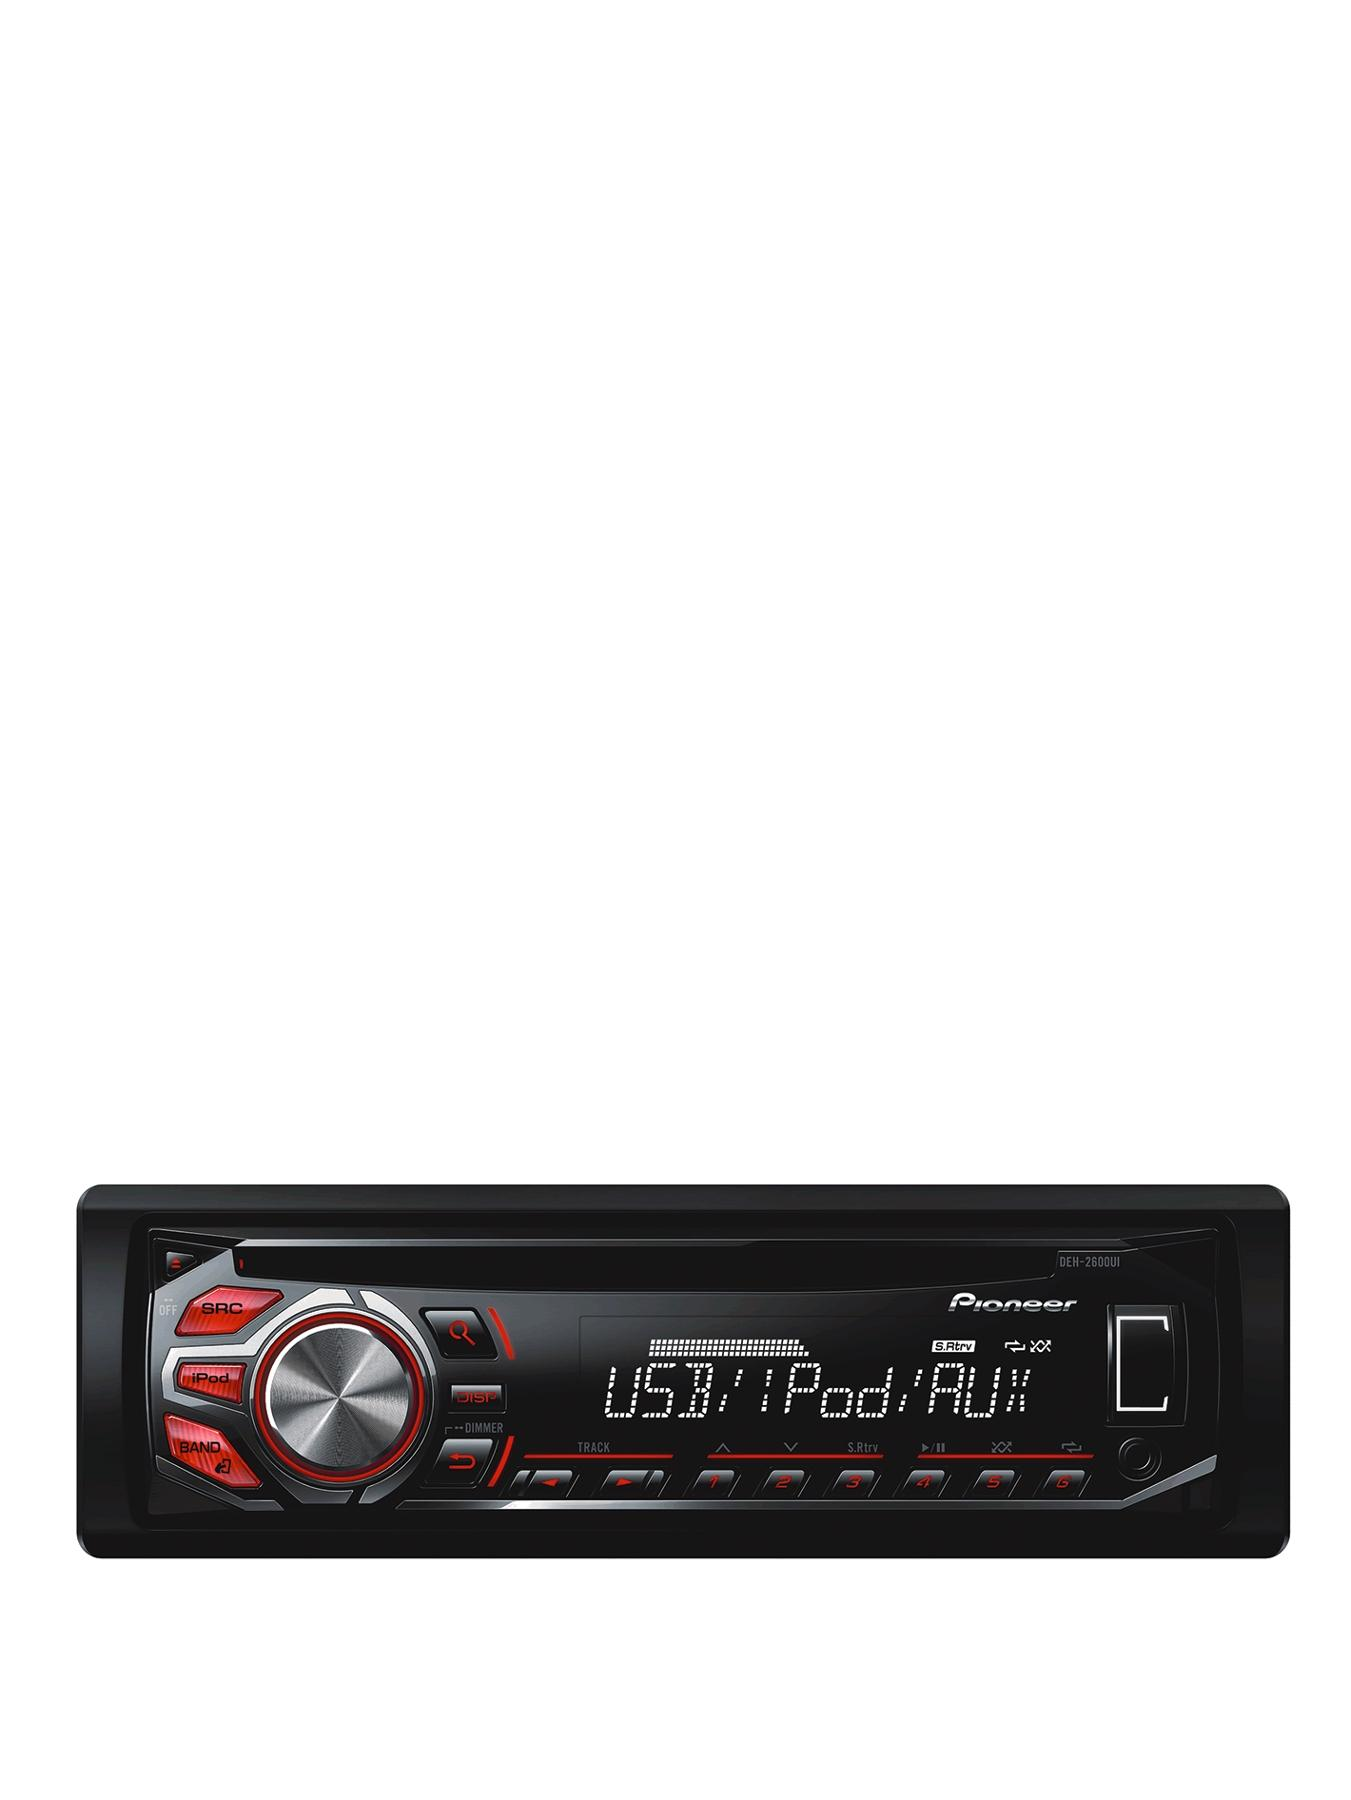 DEH-2600Ui CD Tuner USB iPod/iPHONE Control Red and White Display